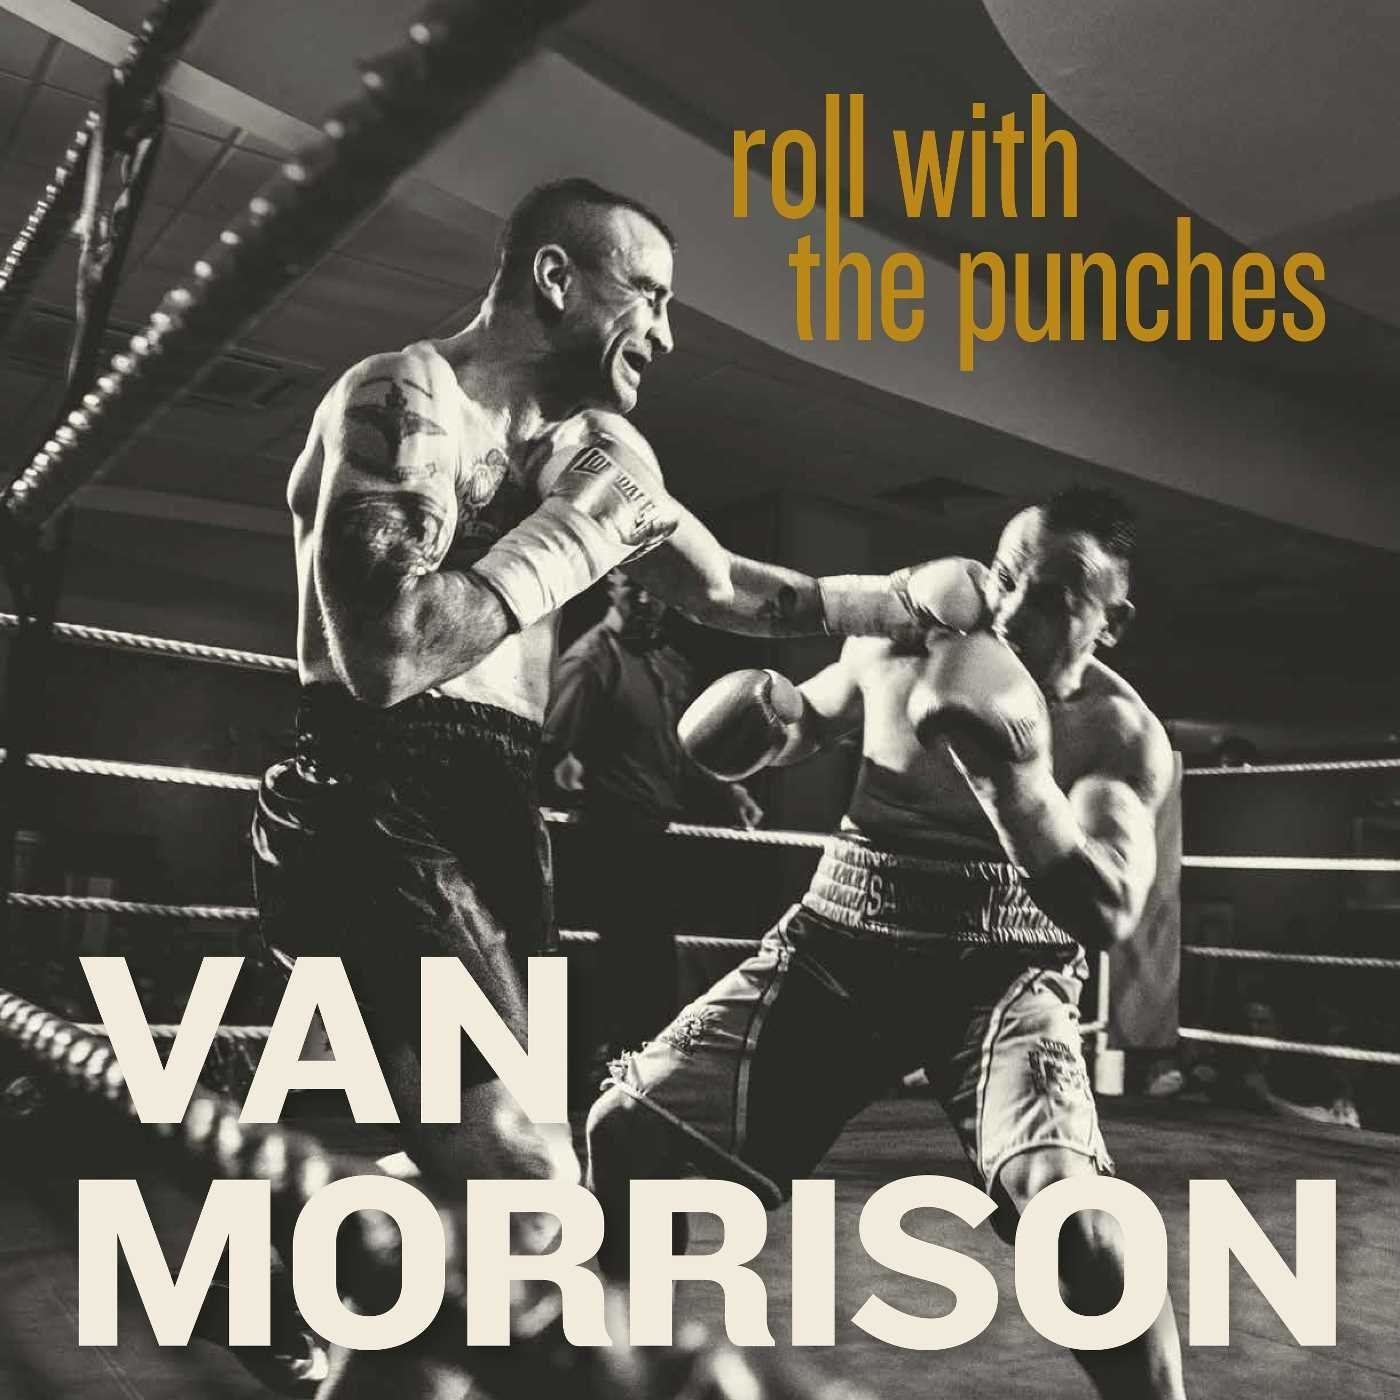 Van Morrison - Roll With The Punches [2LP]